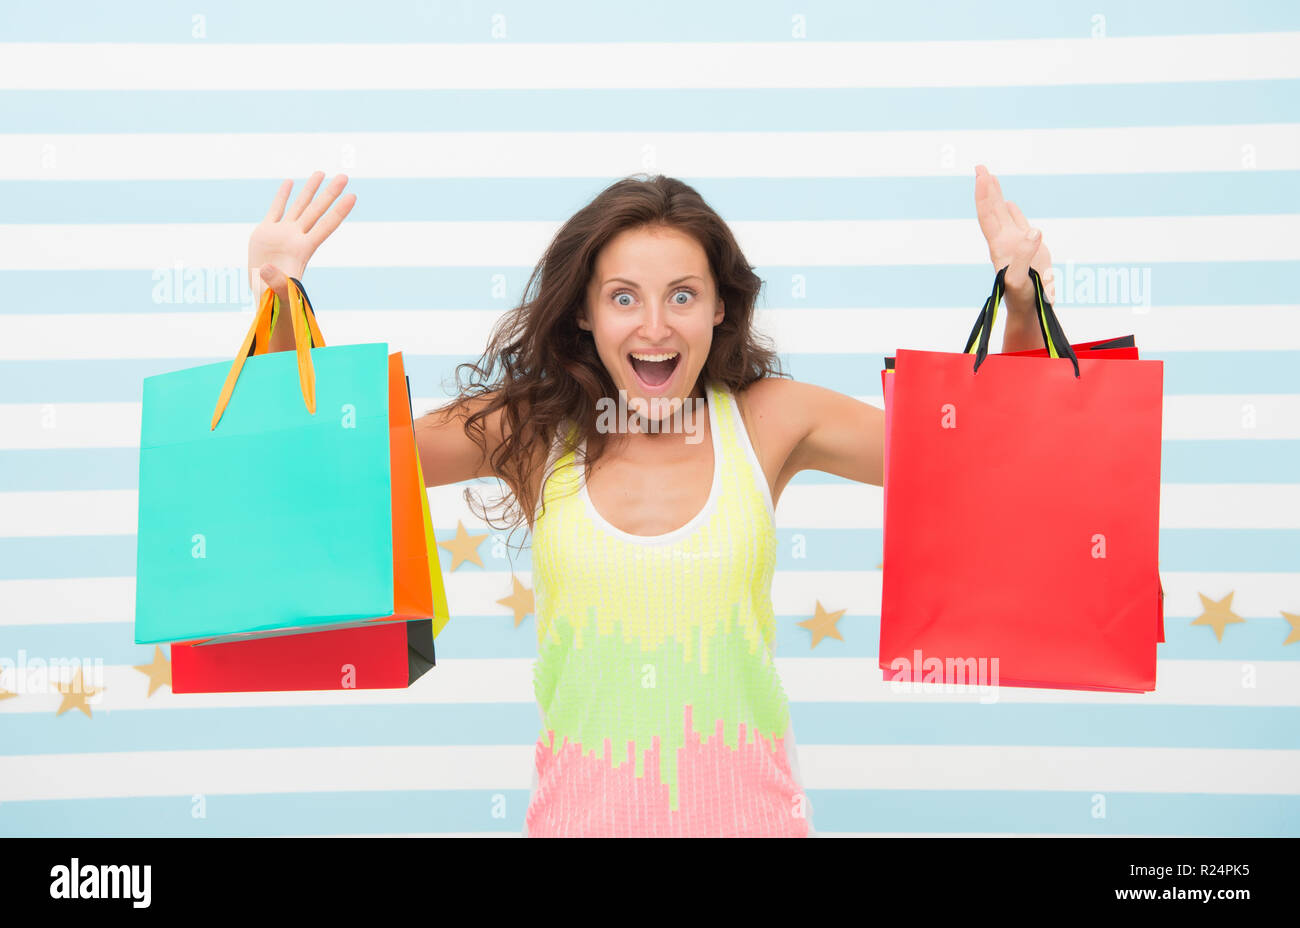 Feel free buy everything you want. Woman carries bunch shopping bags striped background. Finally bought favorite brand. Tips shop sales. Girl satisfied with shopping. Profitable purchase black friday. - Stock Image